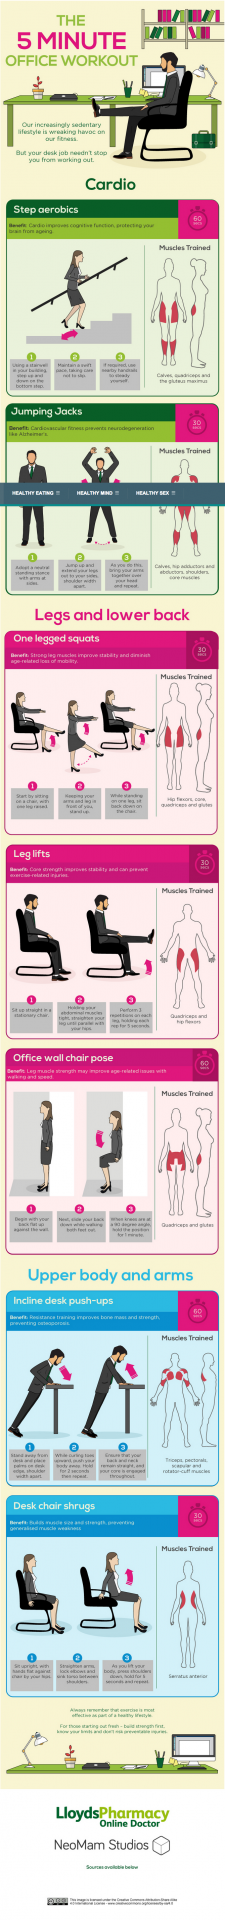 5 Minute Exercise at Work   Everyman Health